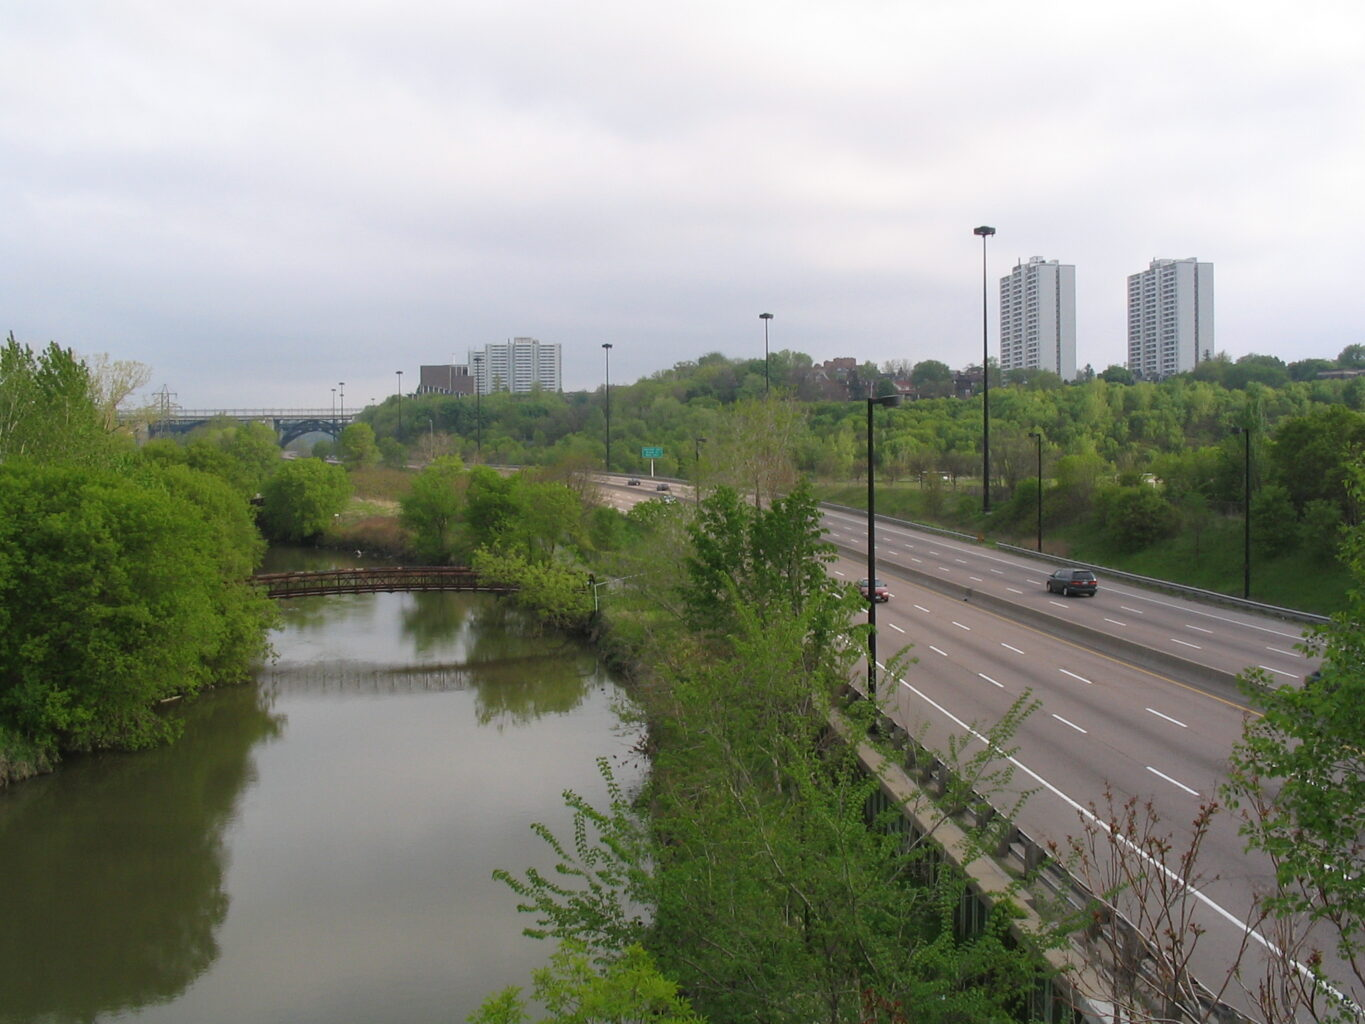 Image of the Don River and Don Valley Parkway with a single car in the lanes